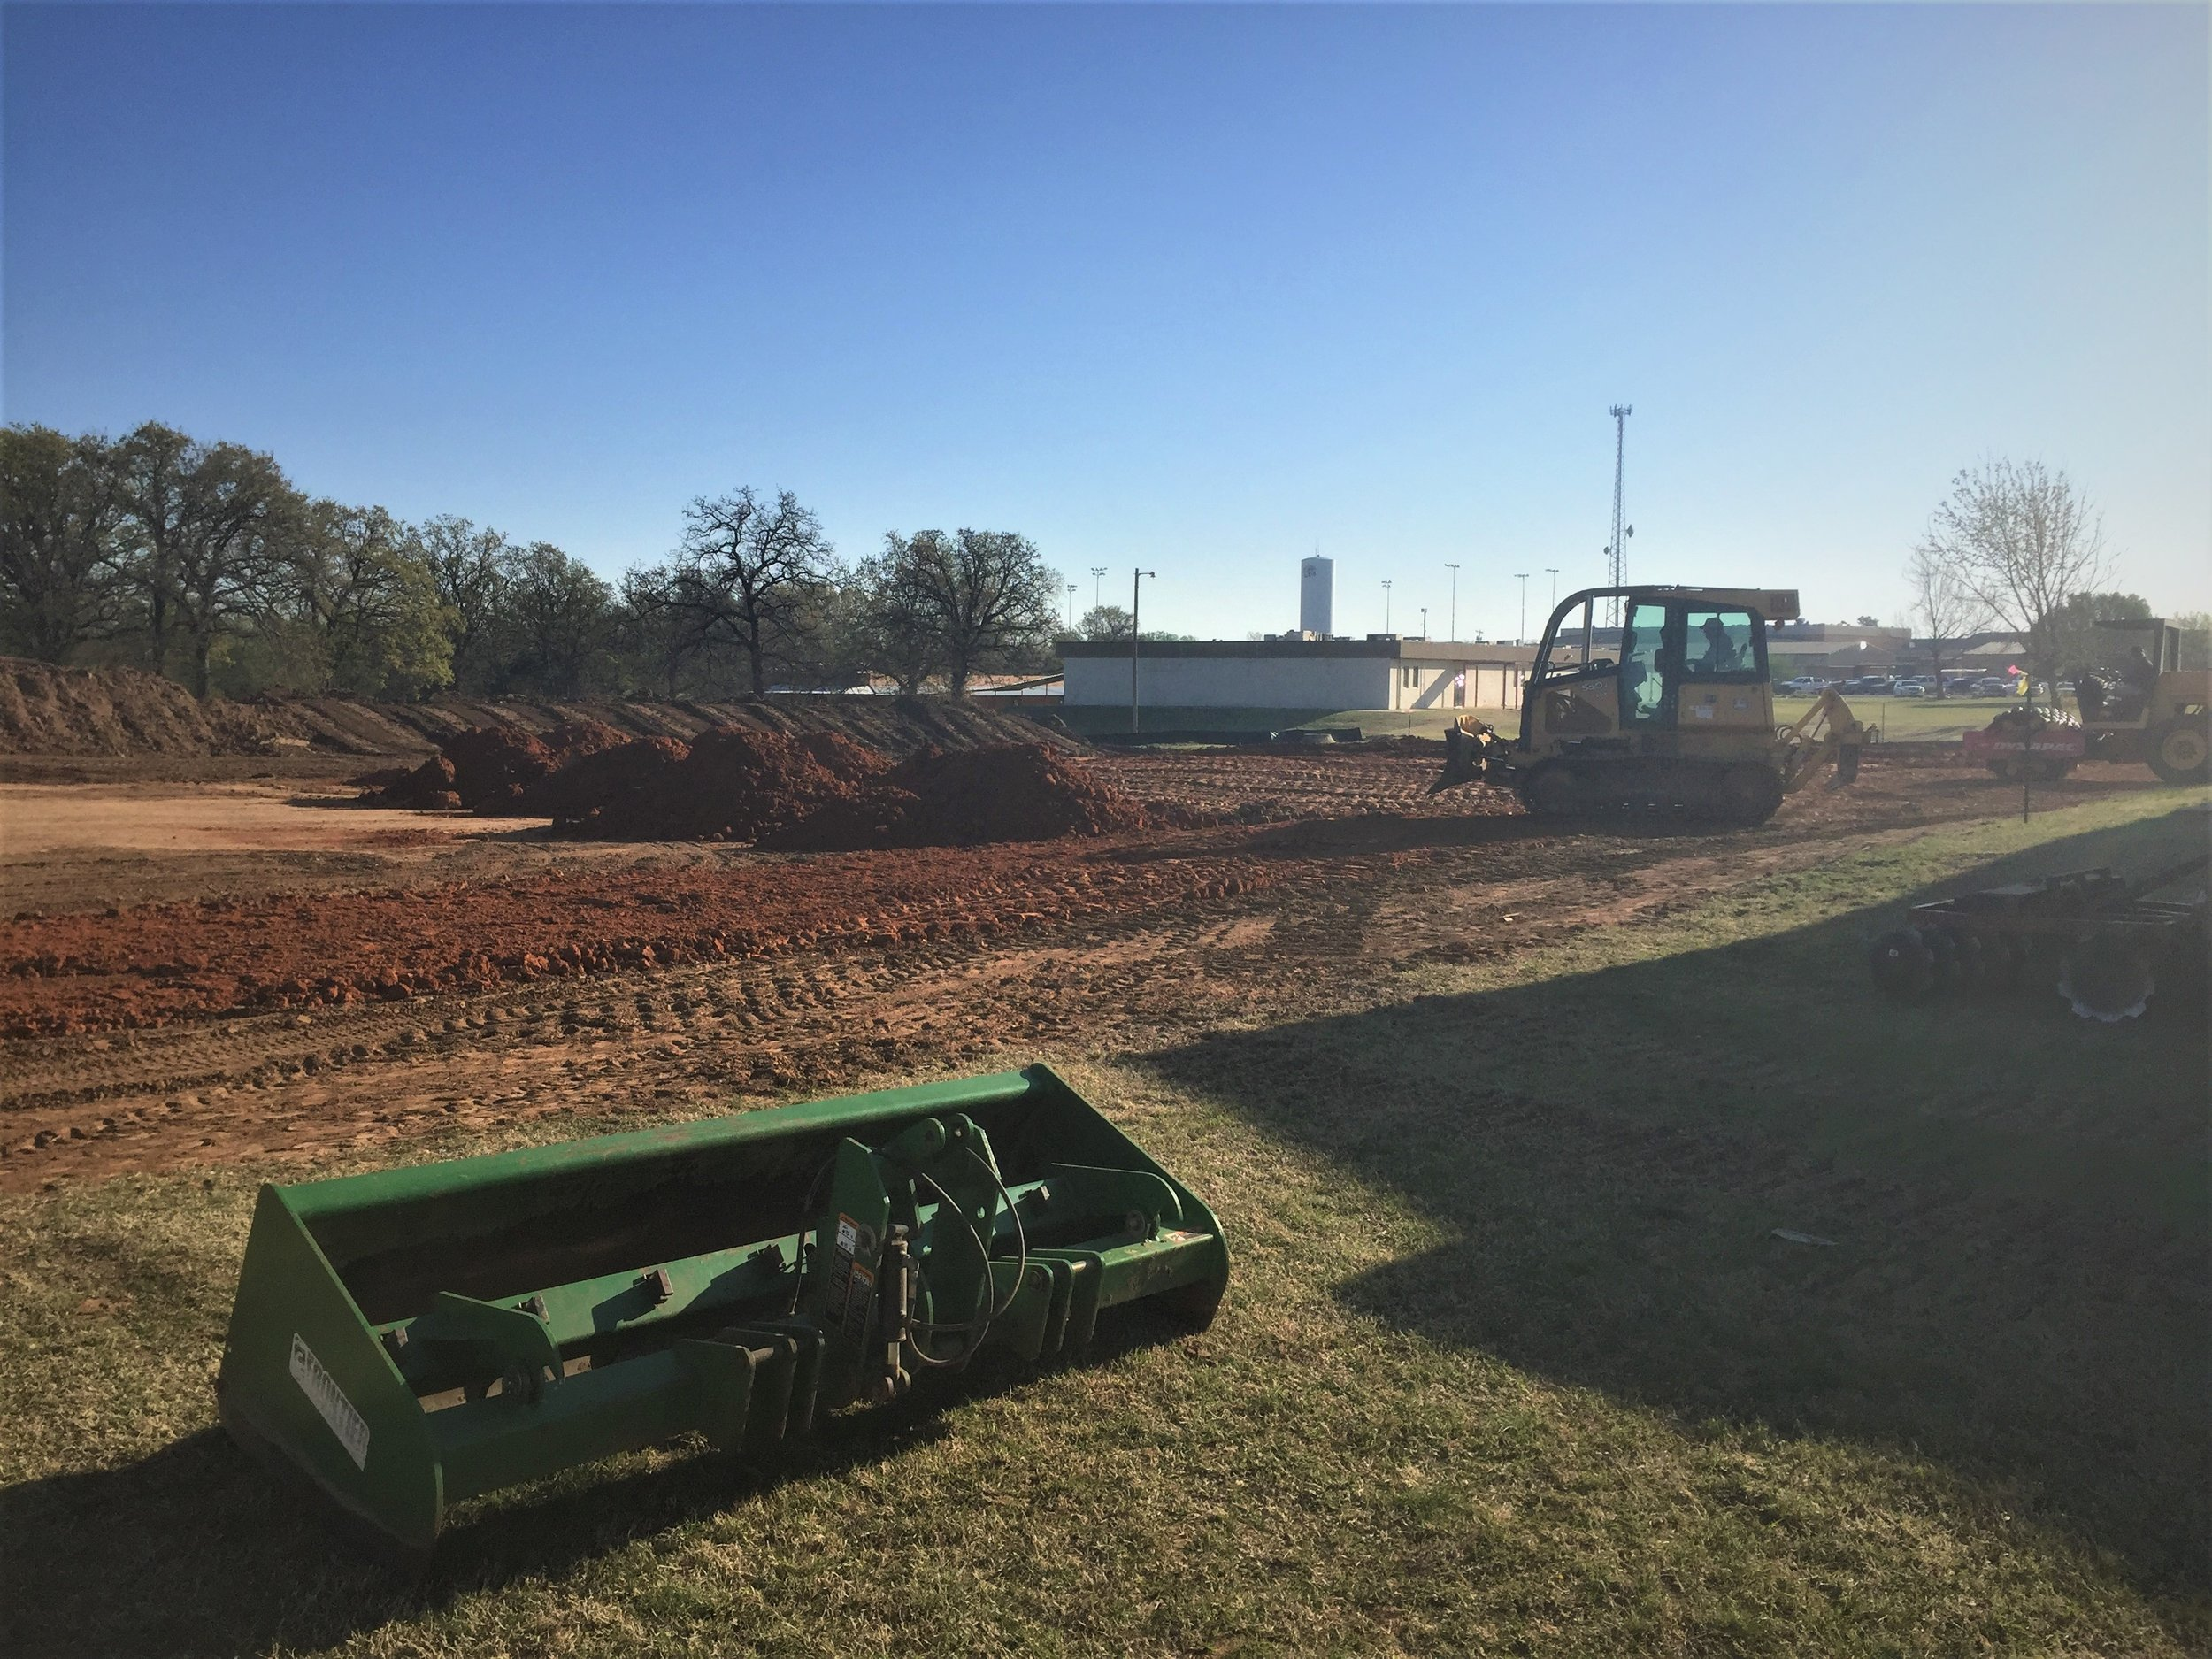 Heat Treatment Land preparation construction Oklahoma City OKC